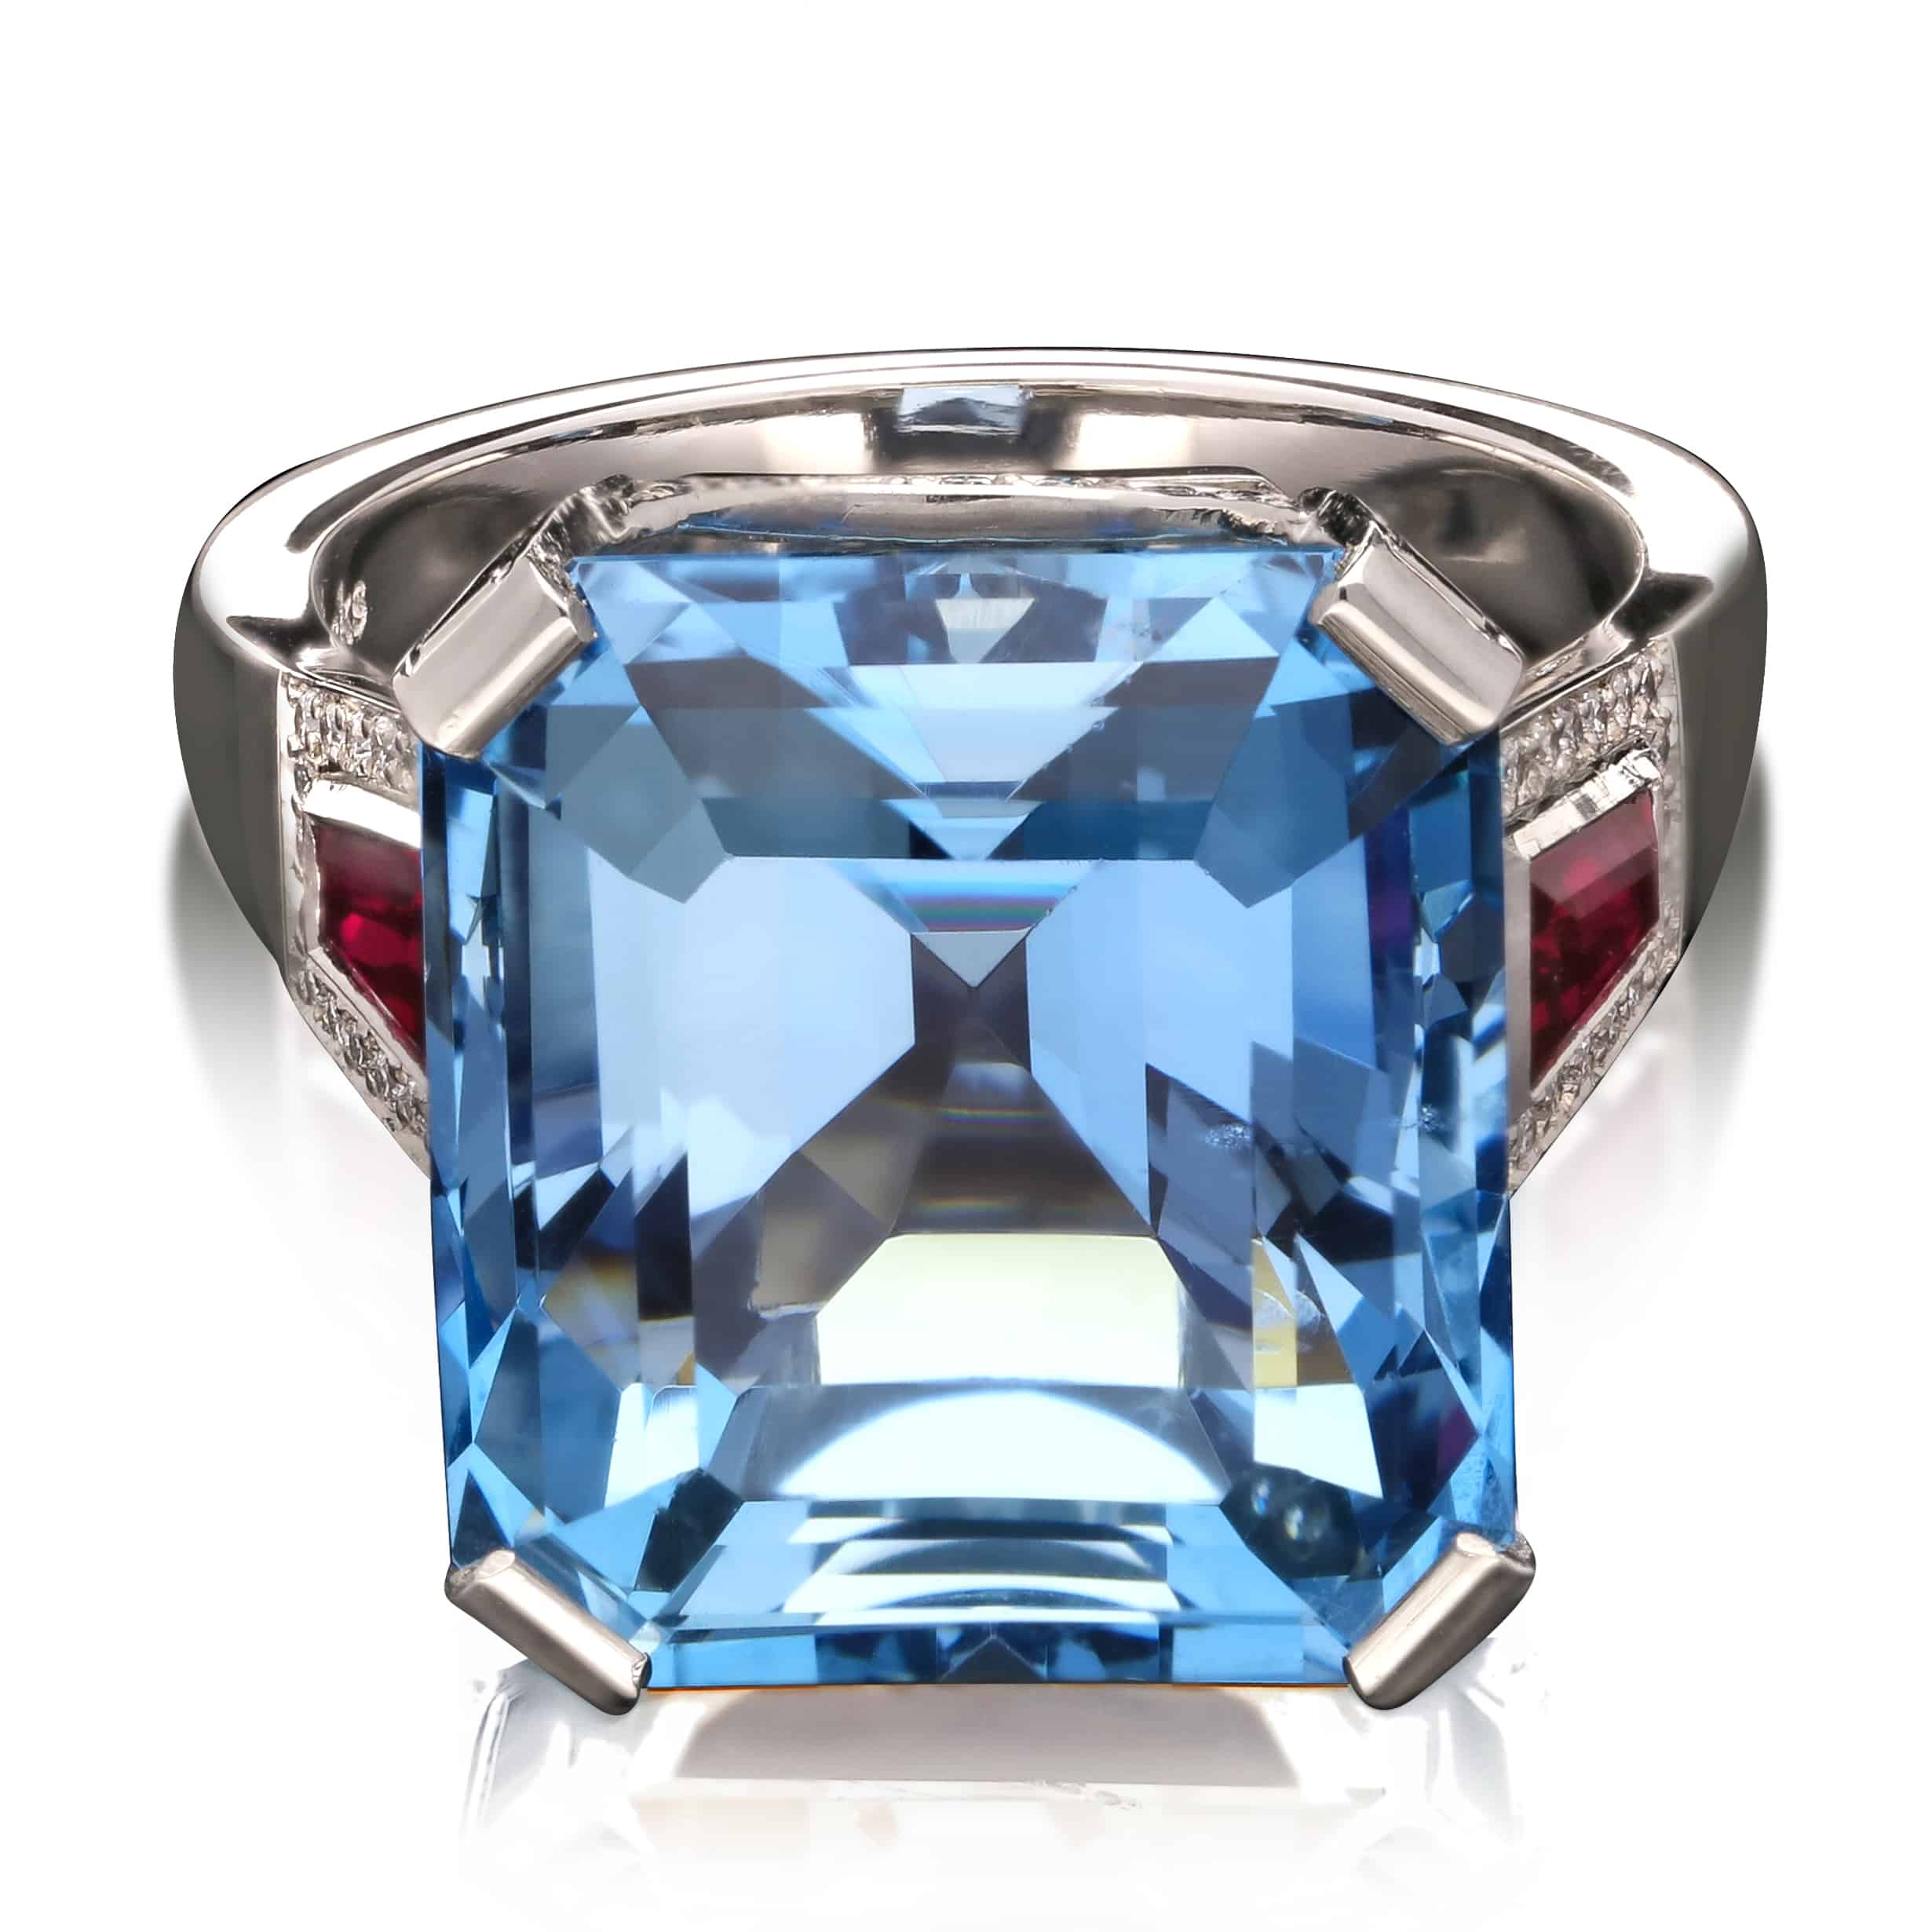 Hancocks London springs in to March with its Jewel of the Month